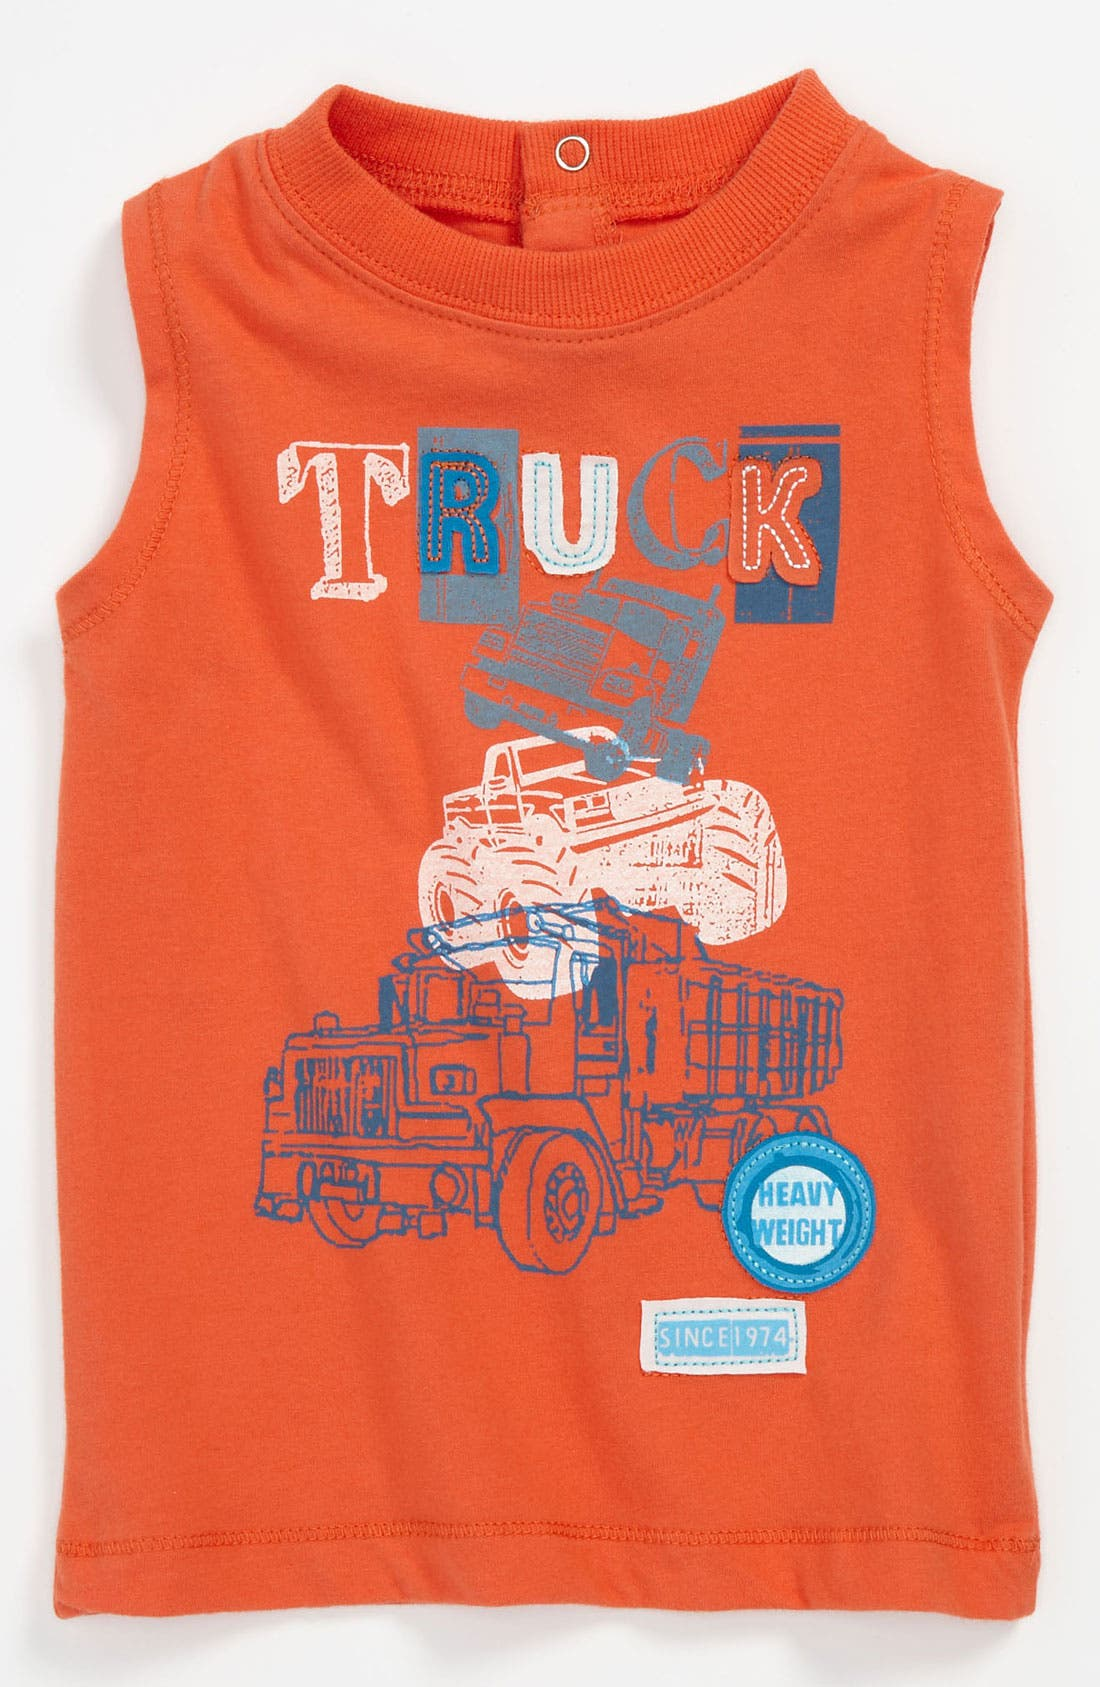 Main Image - Pumpkin Patch Tank Top (Baby)